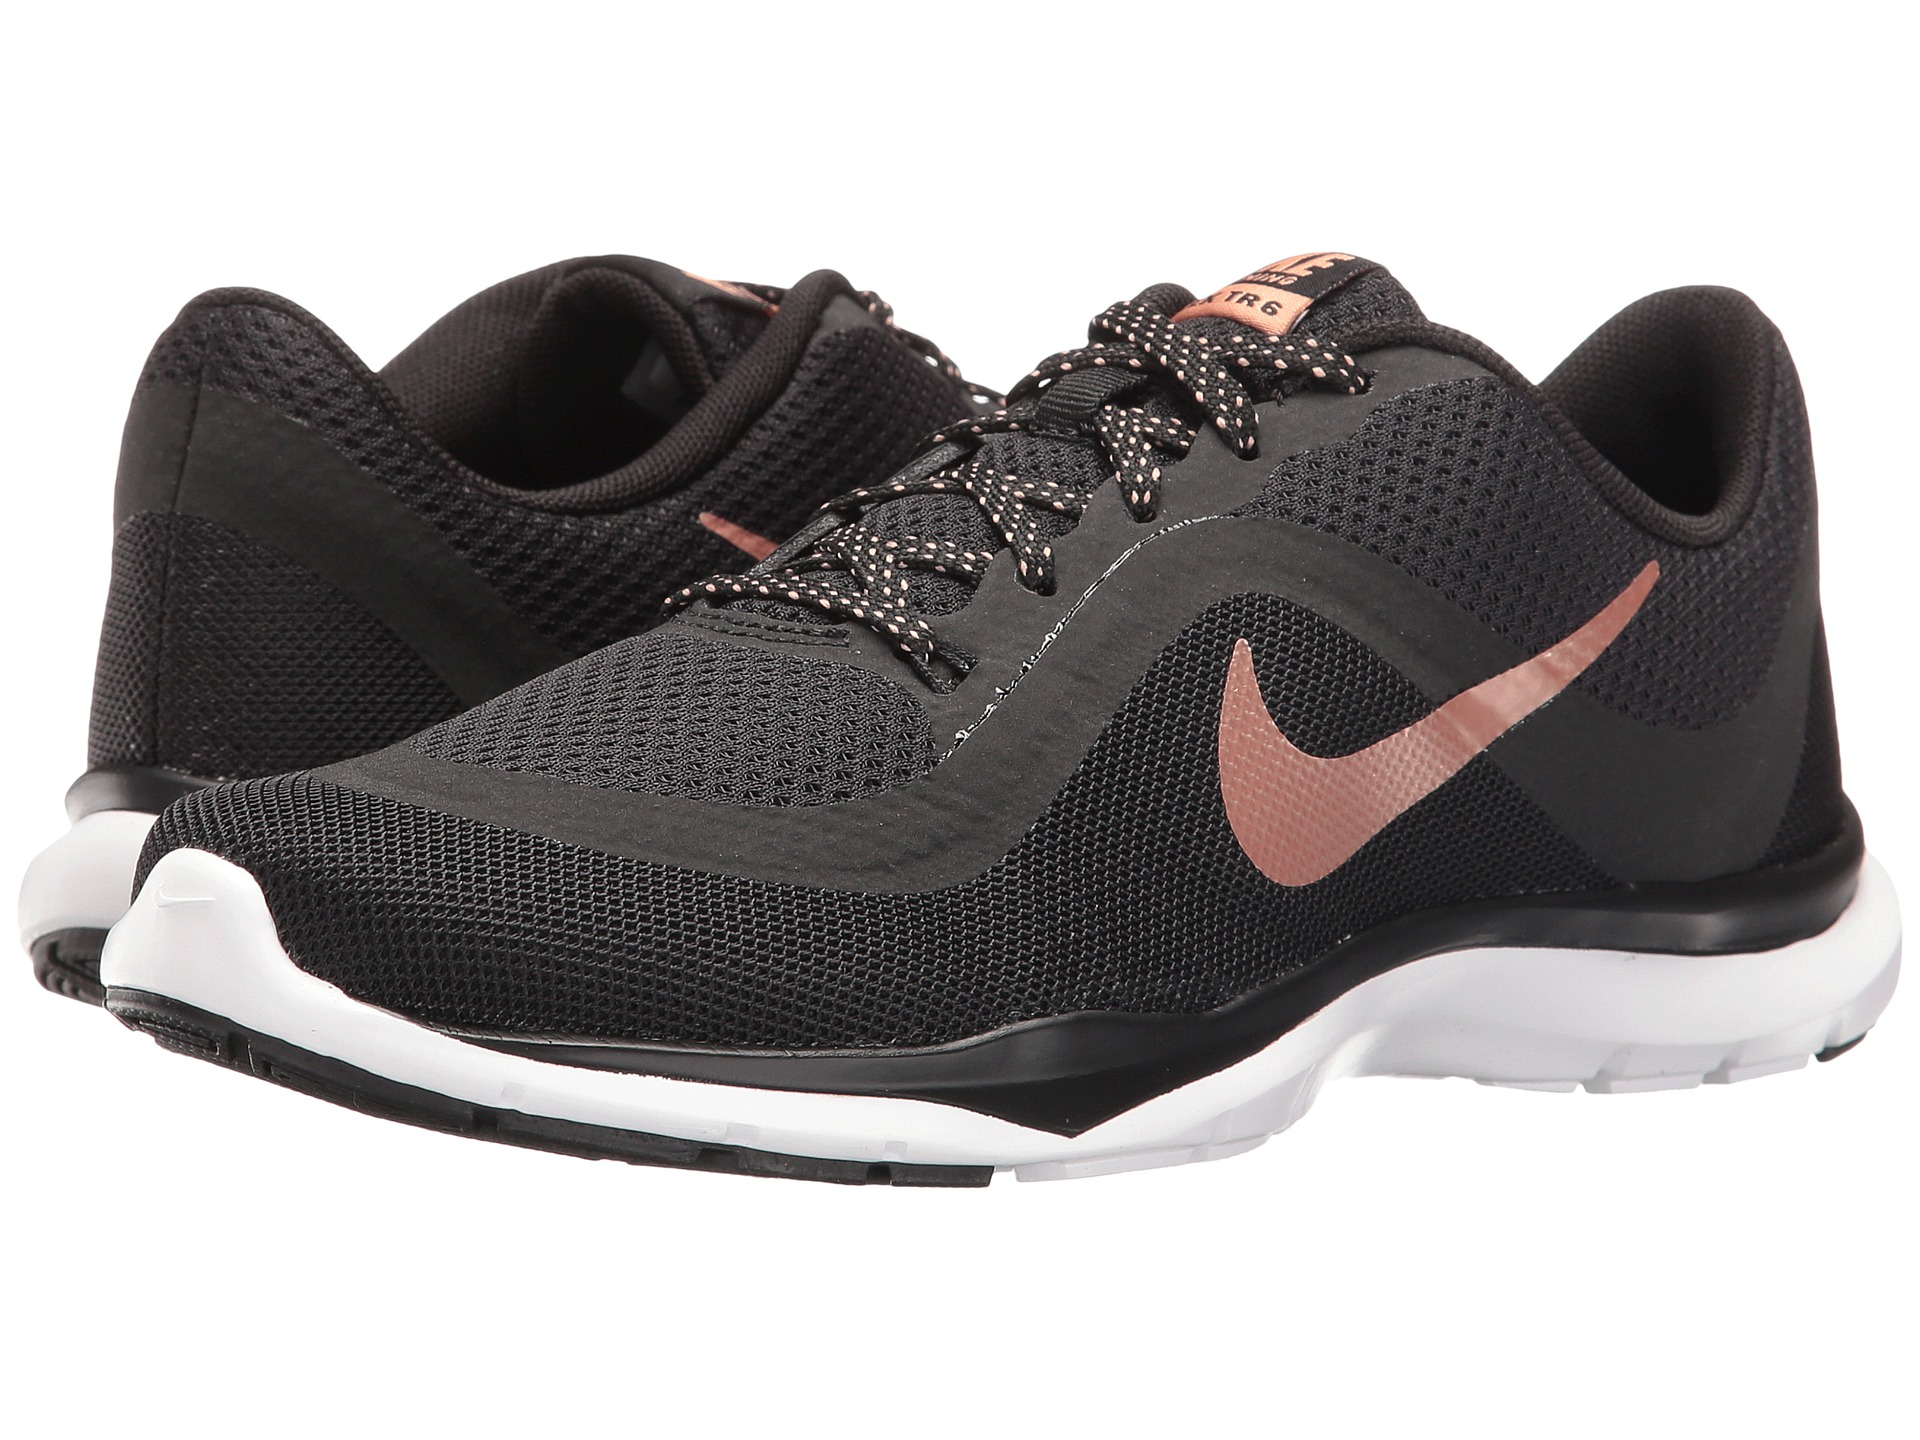 Nike Womens Shoes Rose Gold Zappos